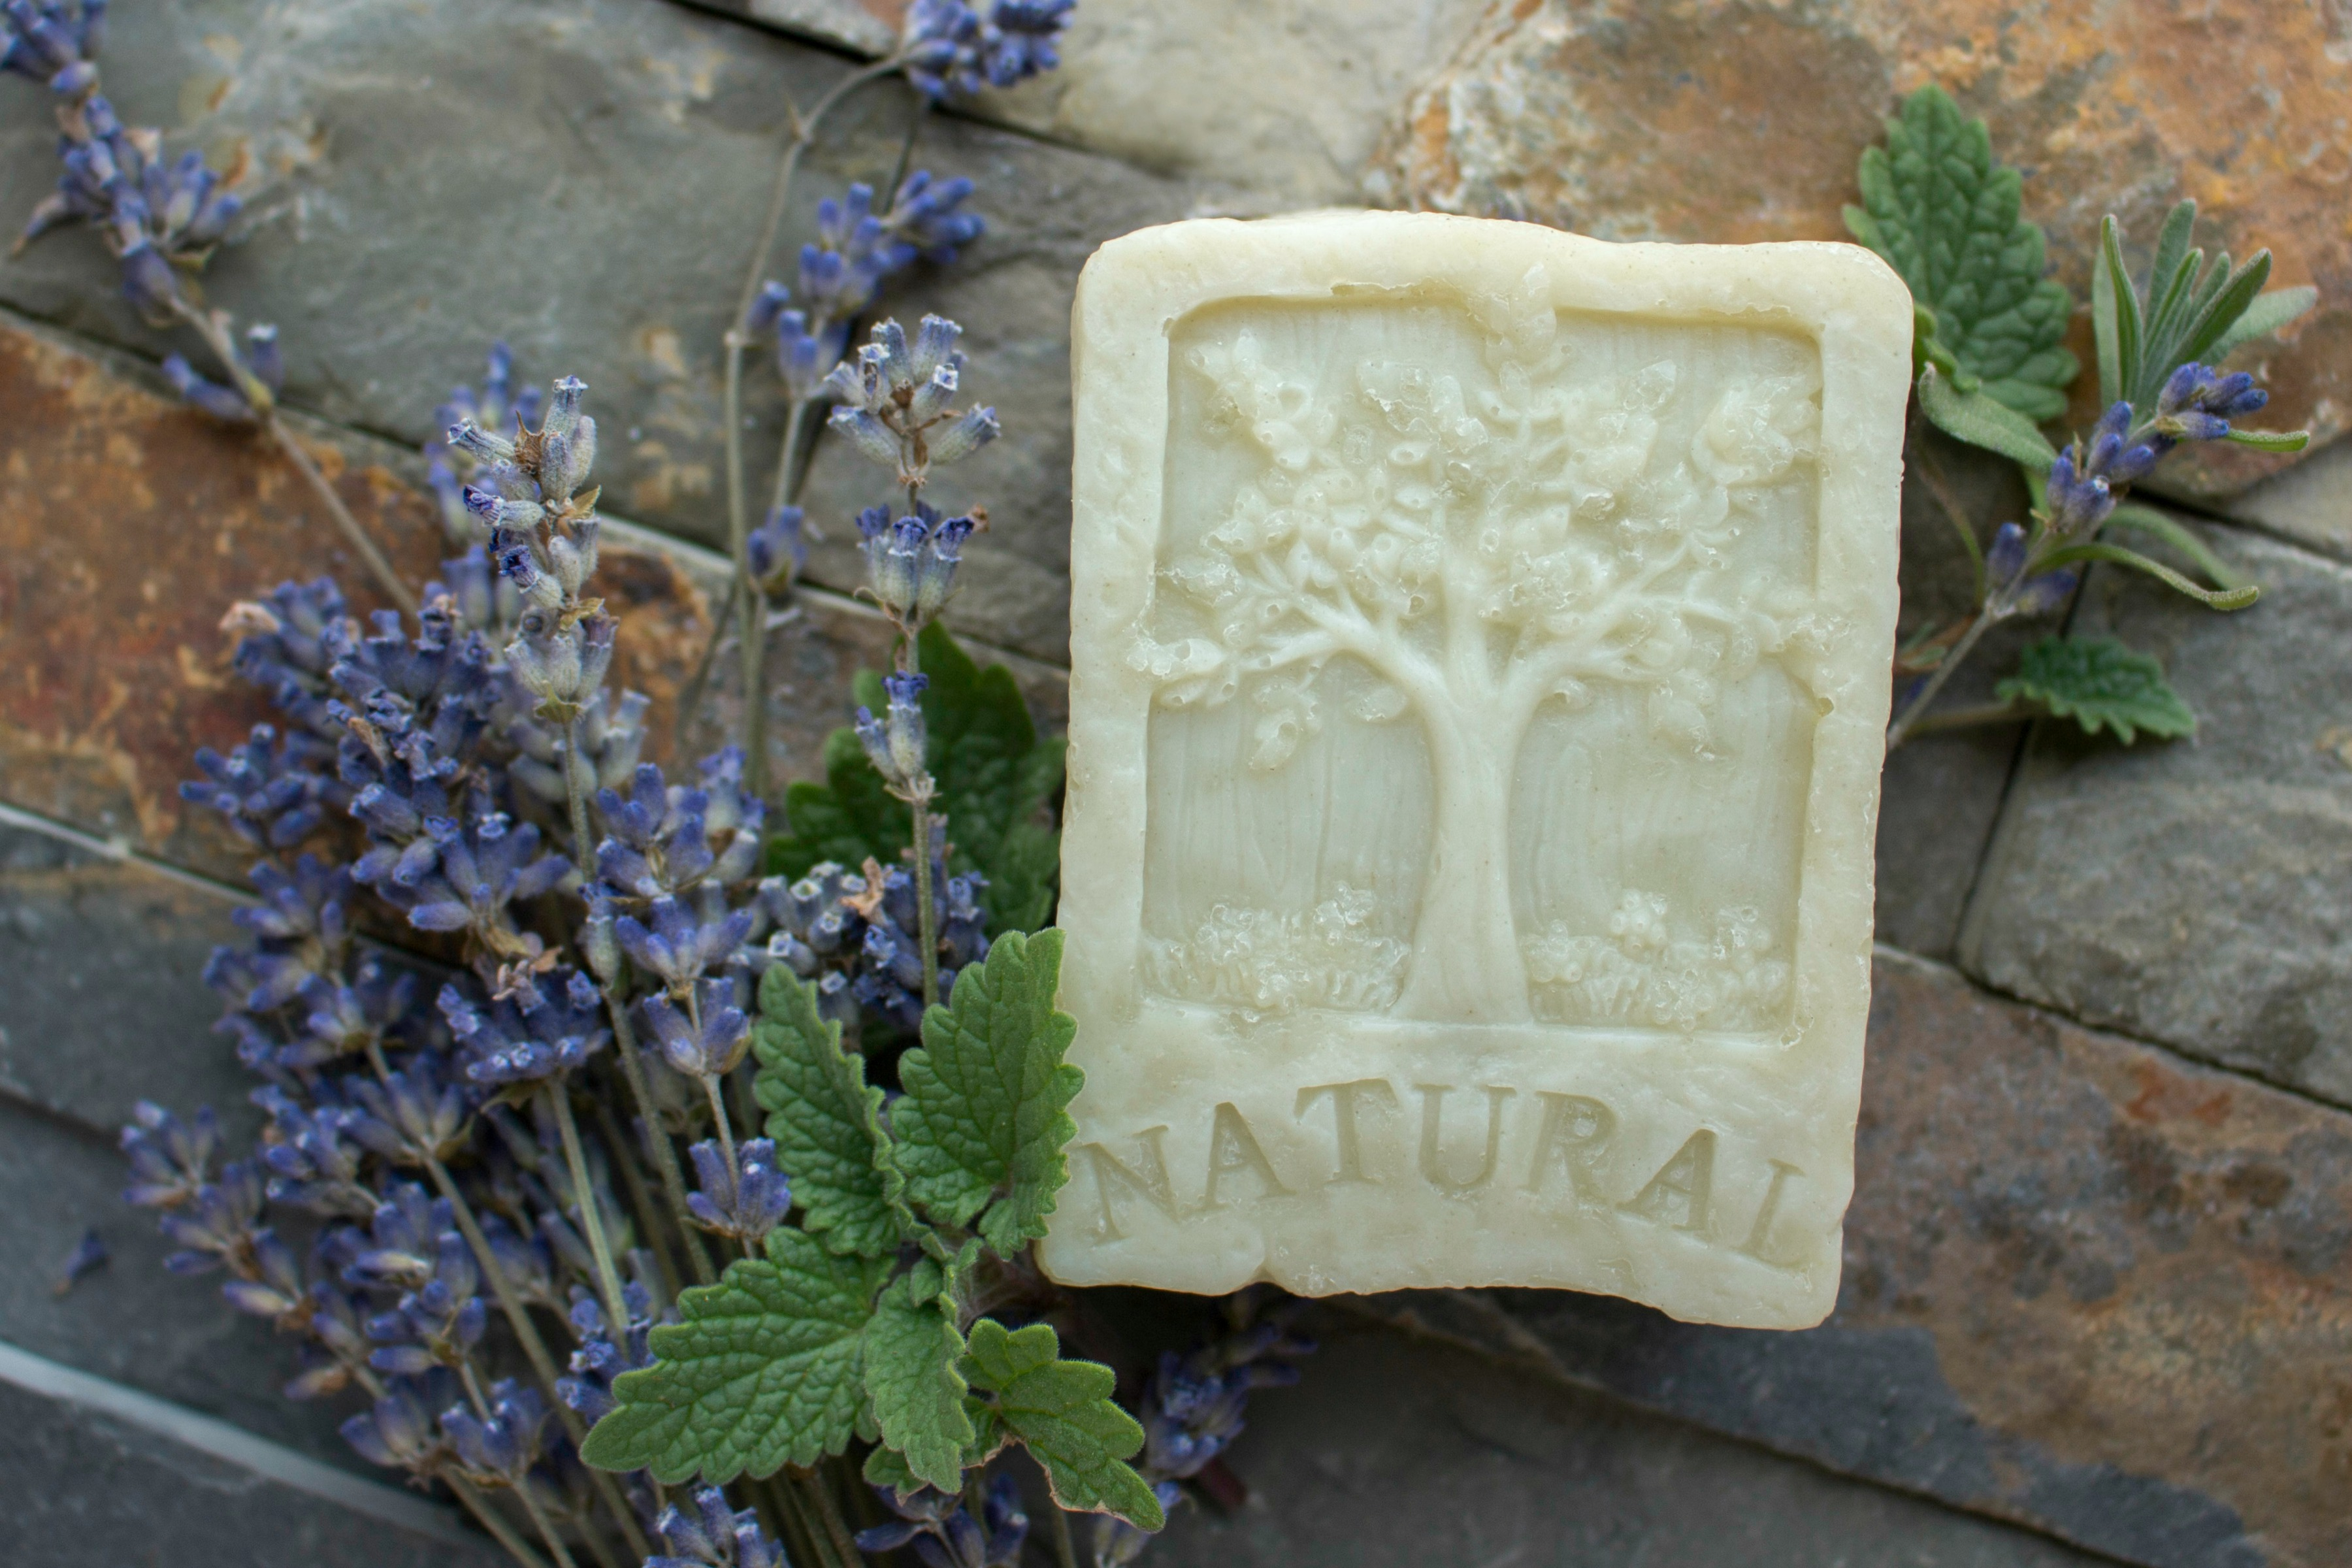 Natural homemade soap made laying with fresh herbs on bricks